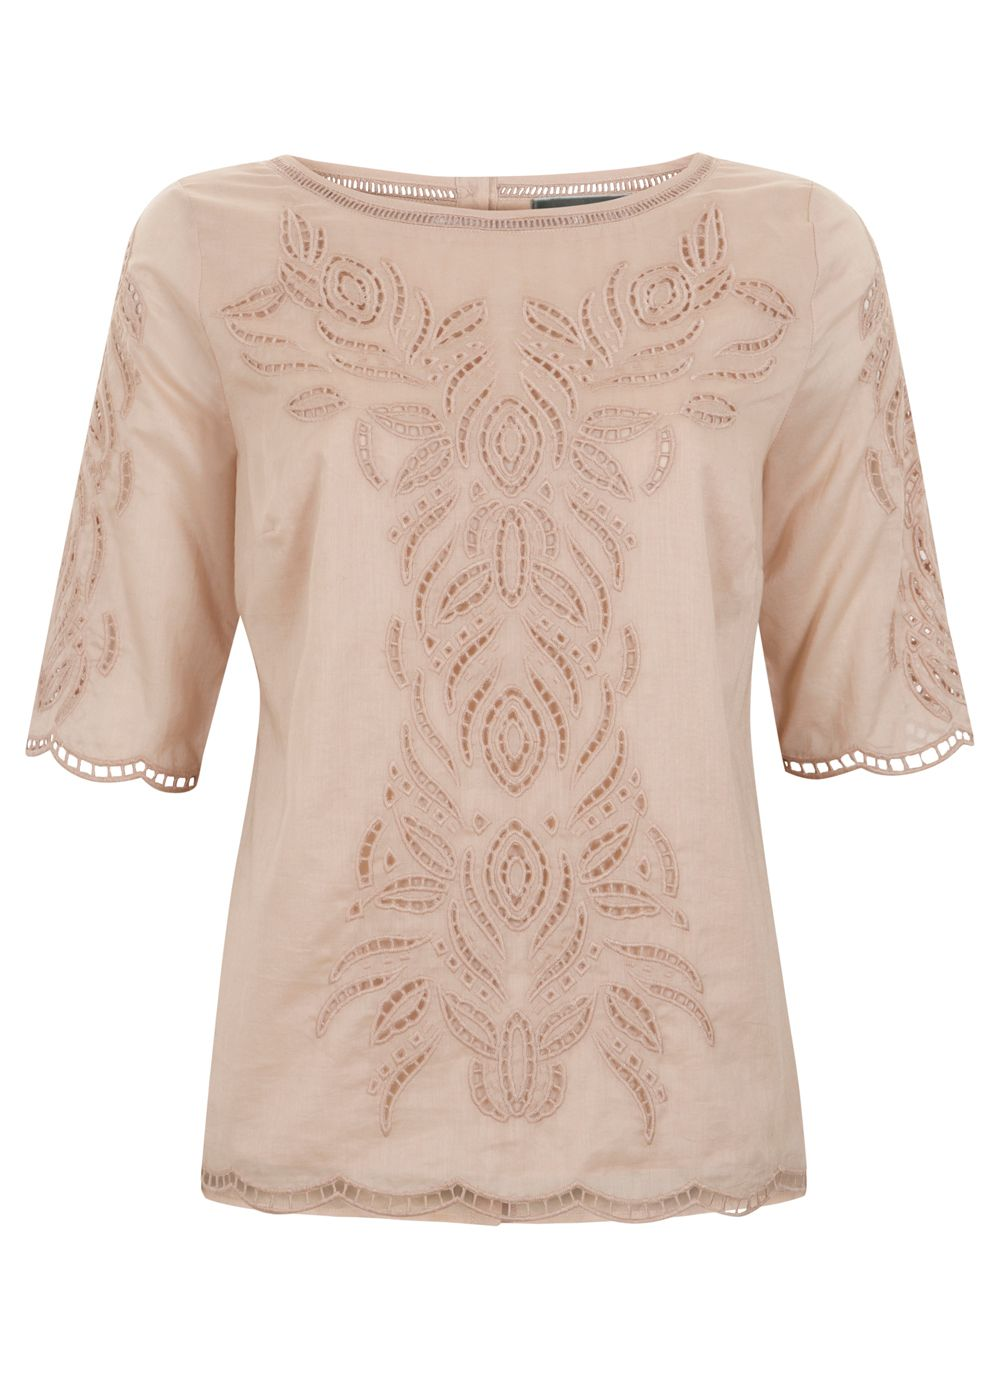 Nude cut out embroidered t-shirt